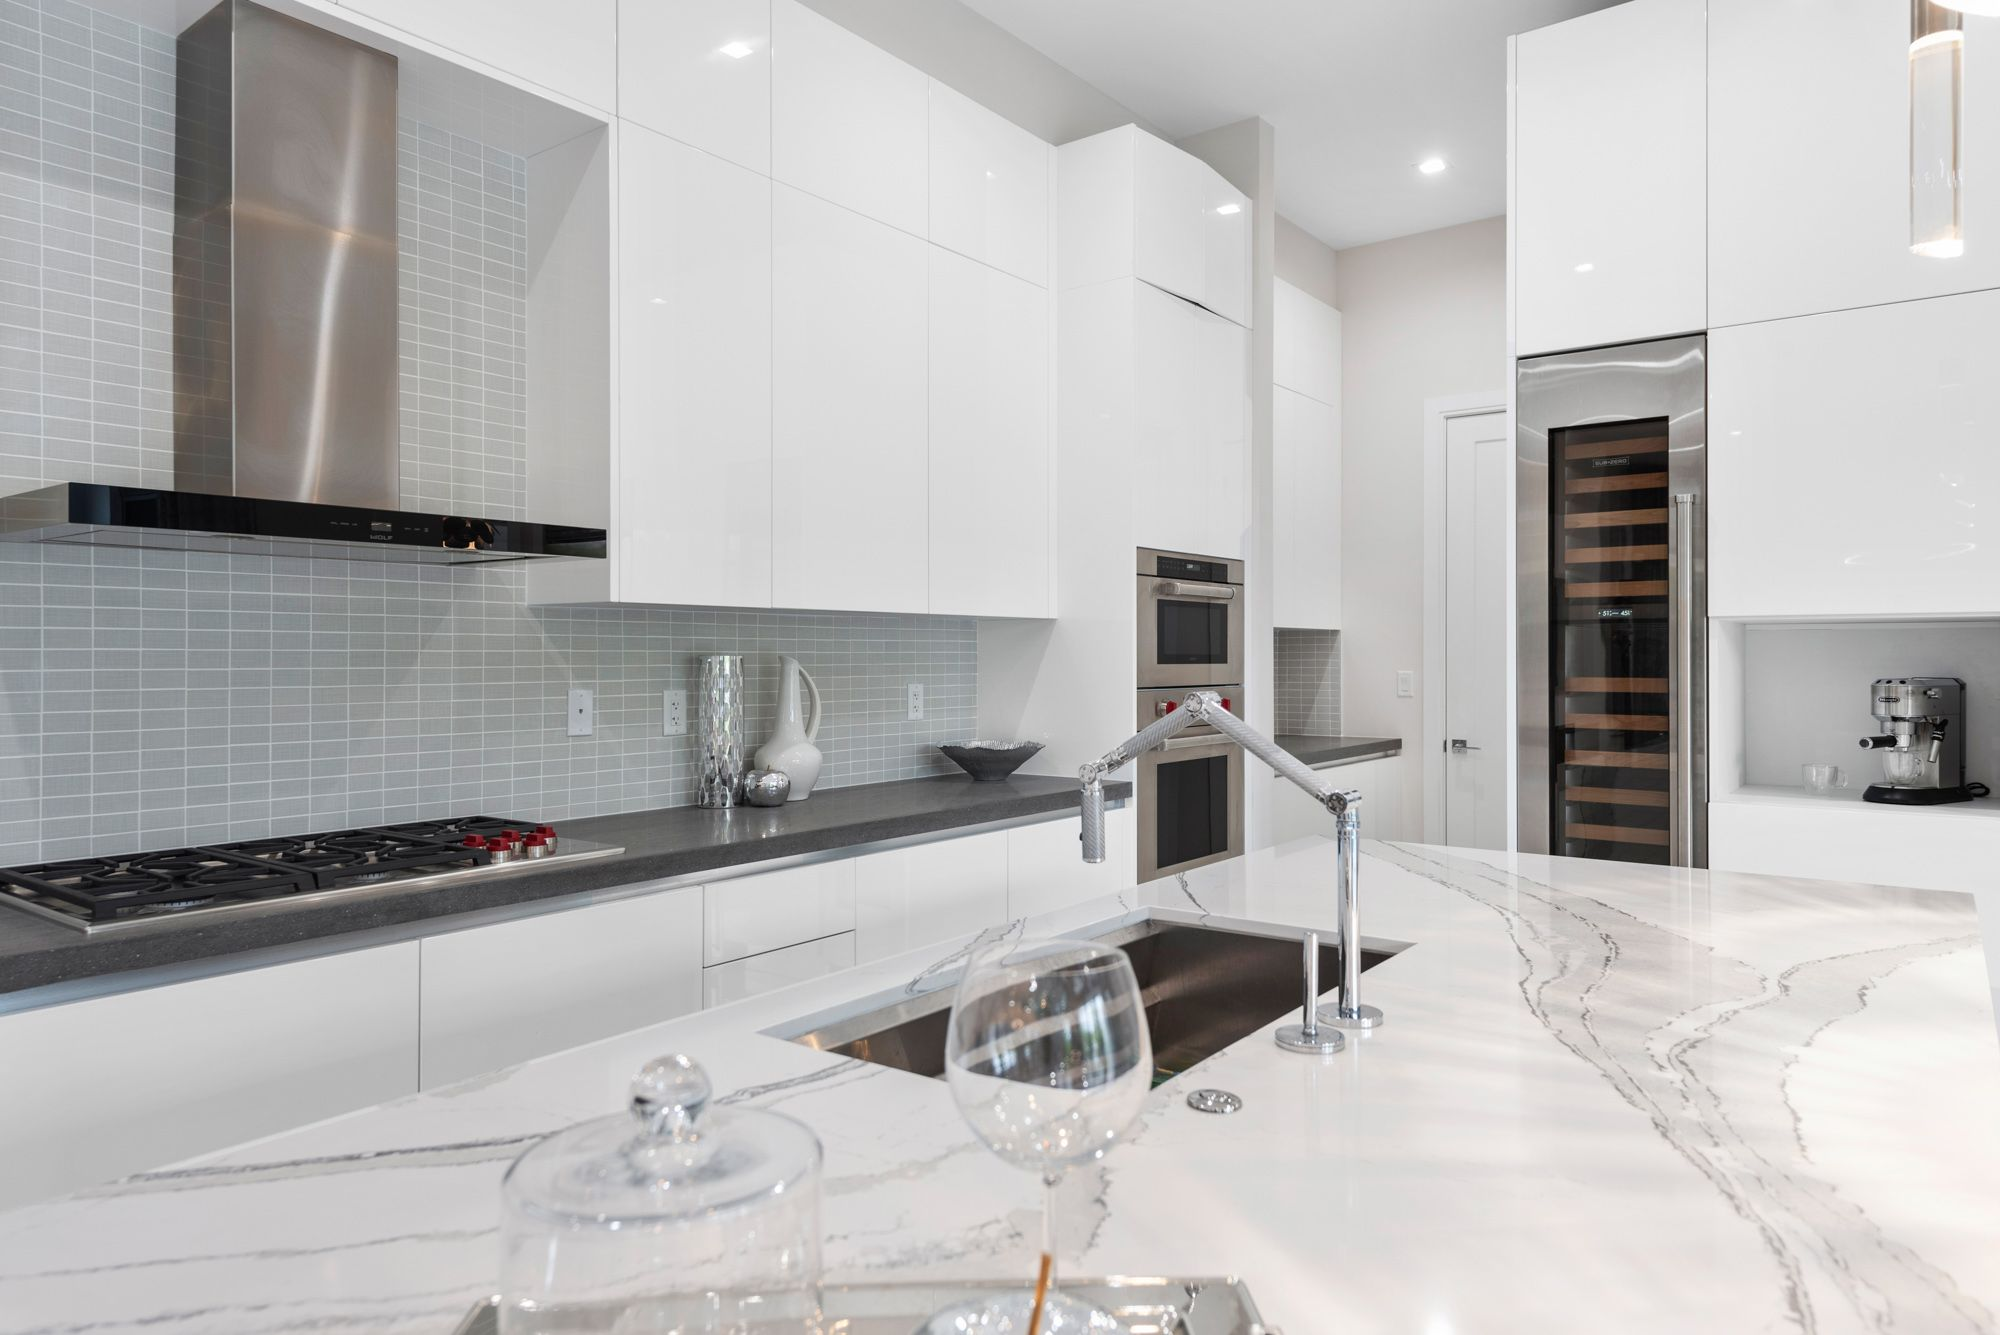 Kitchen featured in the Capri C Two Story By CC Homes in Miami-Dade County, FL